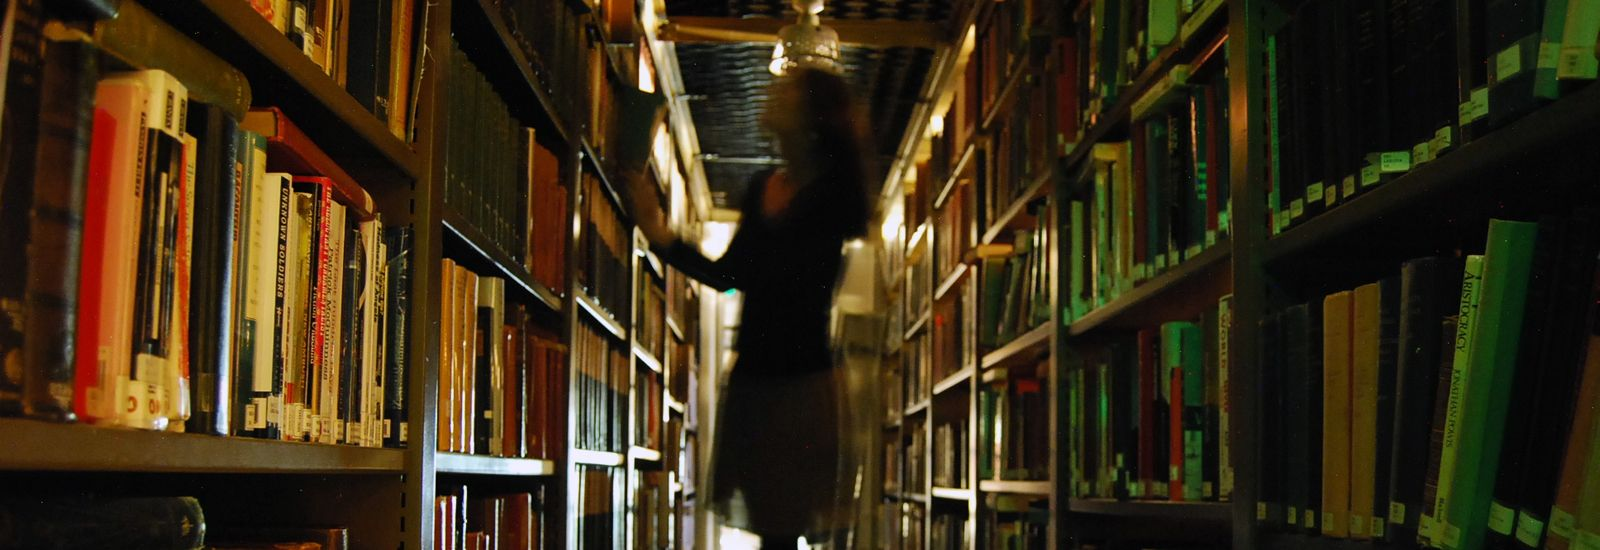 A student standing on a stool in a library